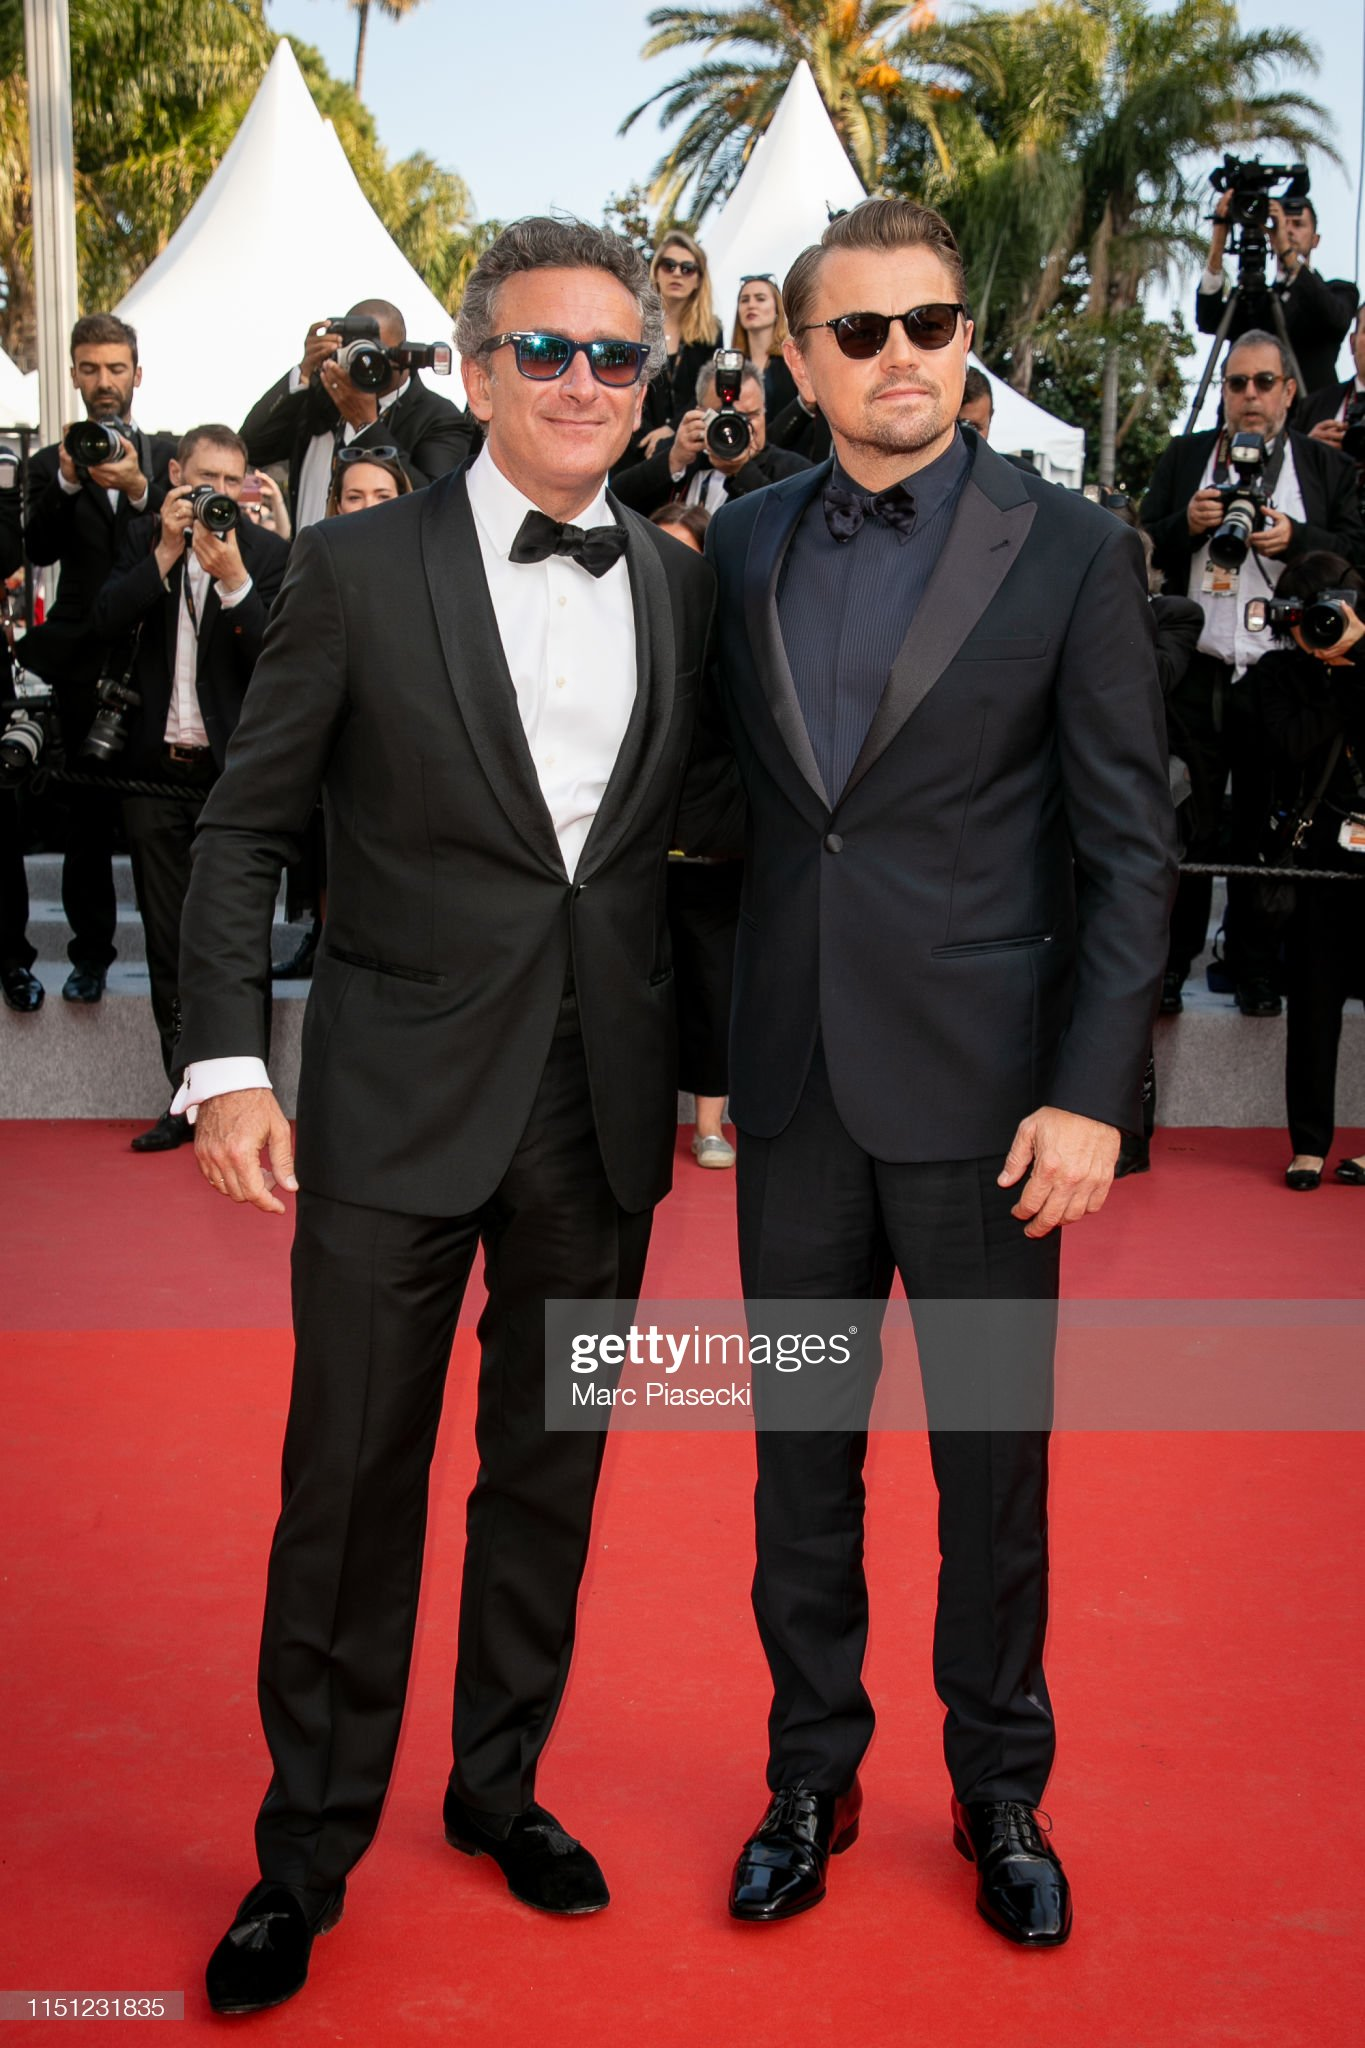 ¿Cuánto mide Alejandro Agag? - Altura - Real height Alejandro-agag-and-leonardo-dicaprio-attend-the-screening-of-the-picture-id1151231835?s=2048x2048